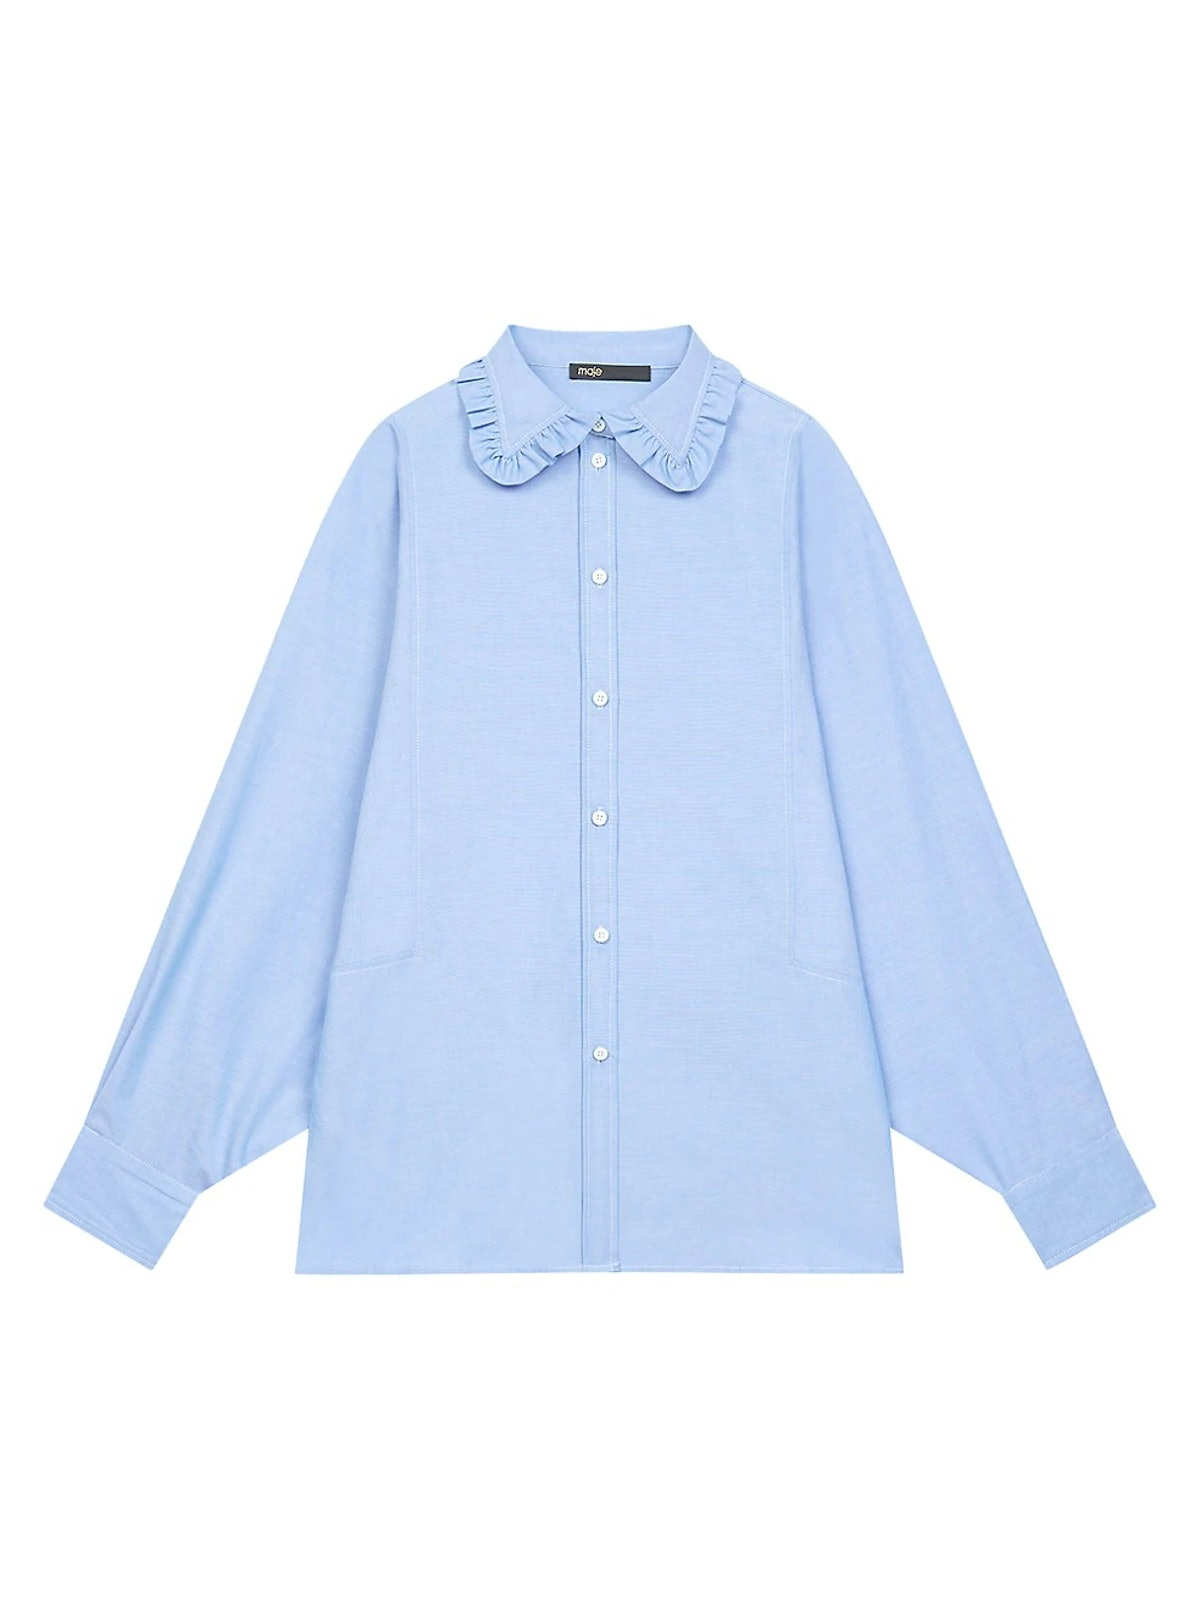 Ruffled Peter Pan Collar Shirt from Maje, available on Saks Fifth Avenue.